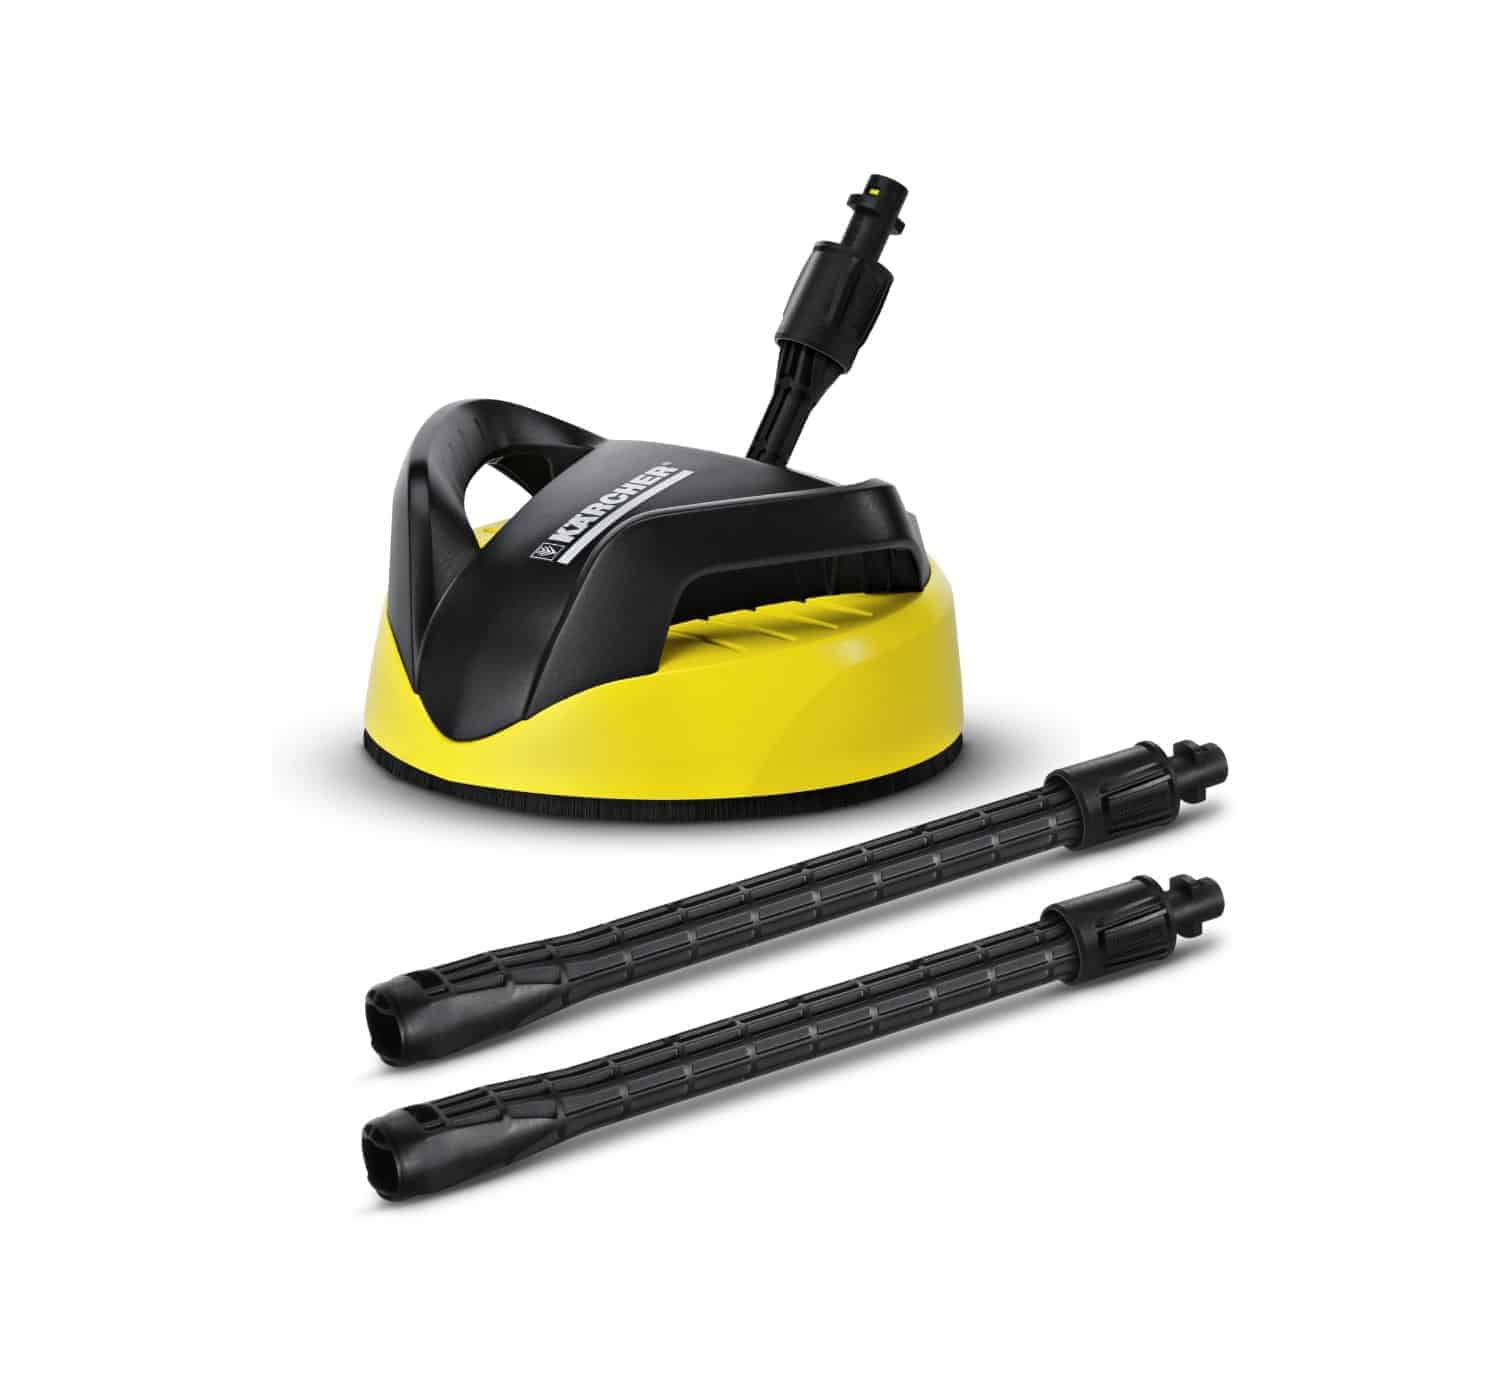 Karcher t250 deck and driveway surface cleaner review for Pressure washer driveway cleaner